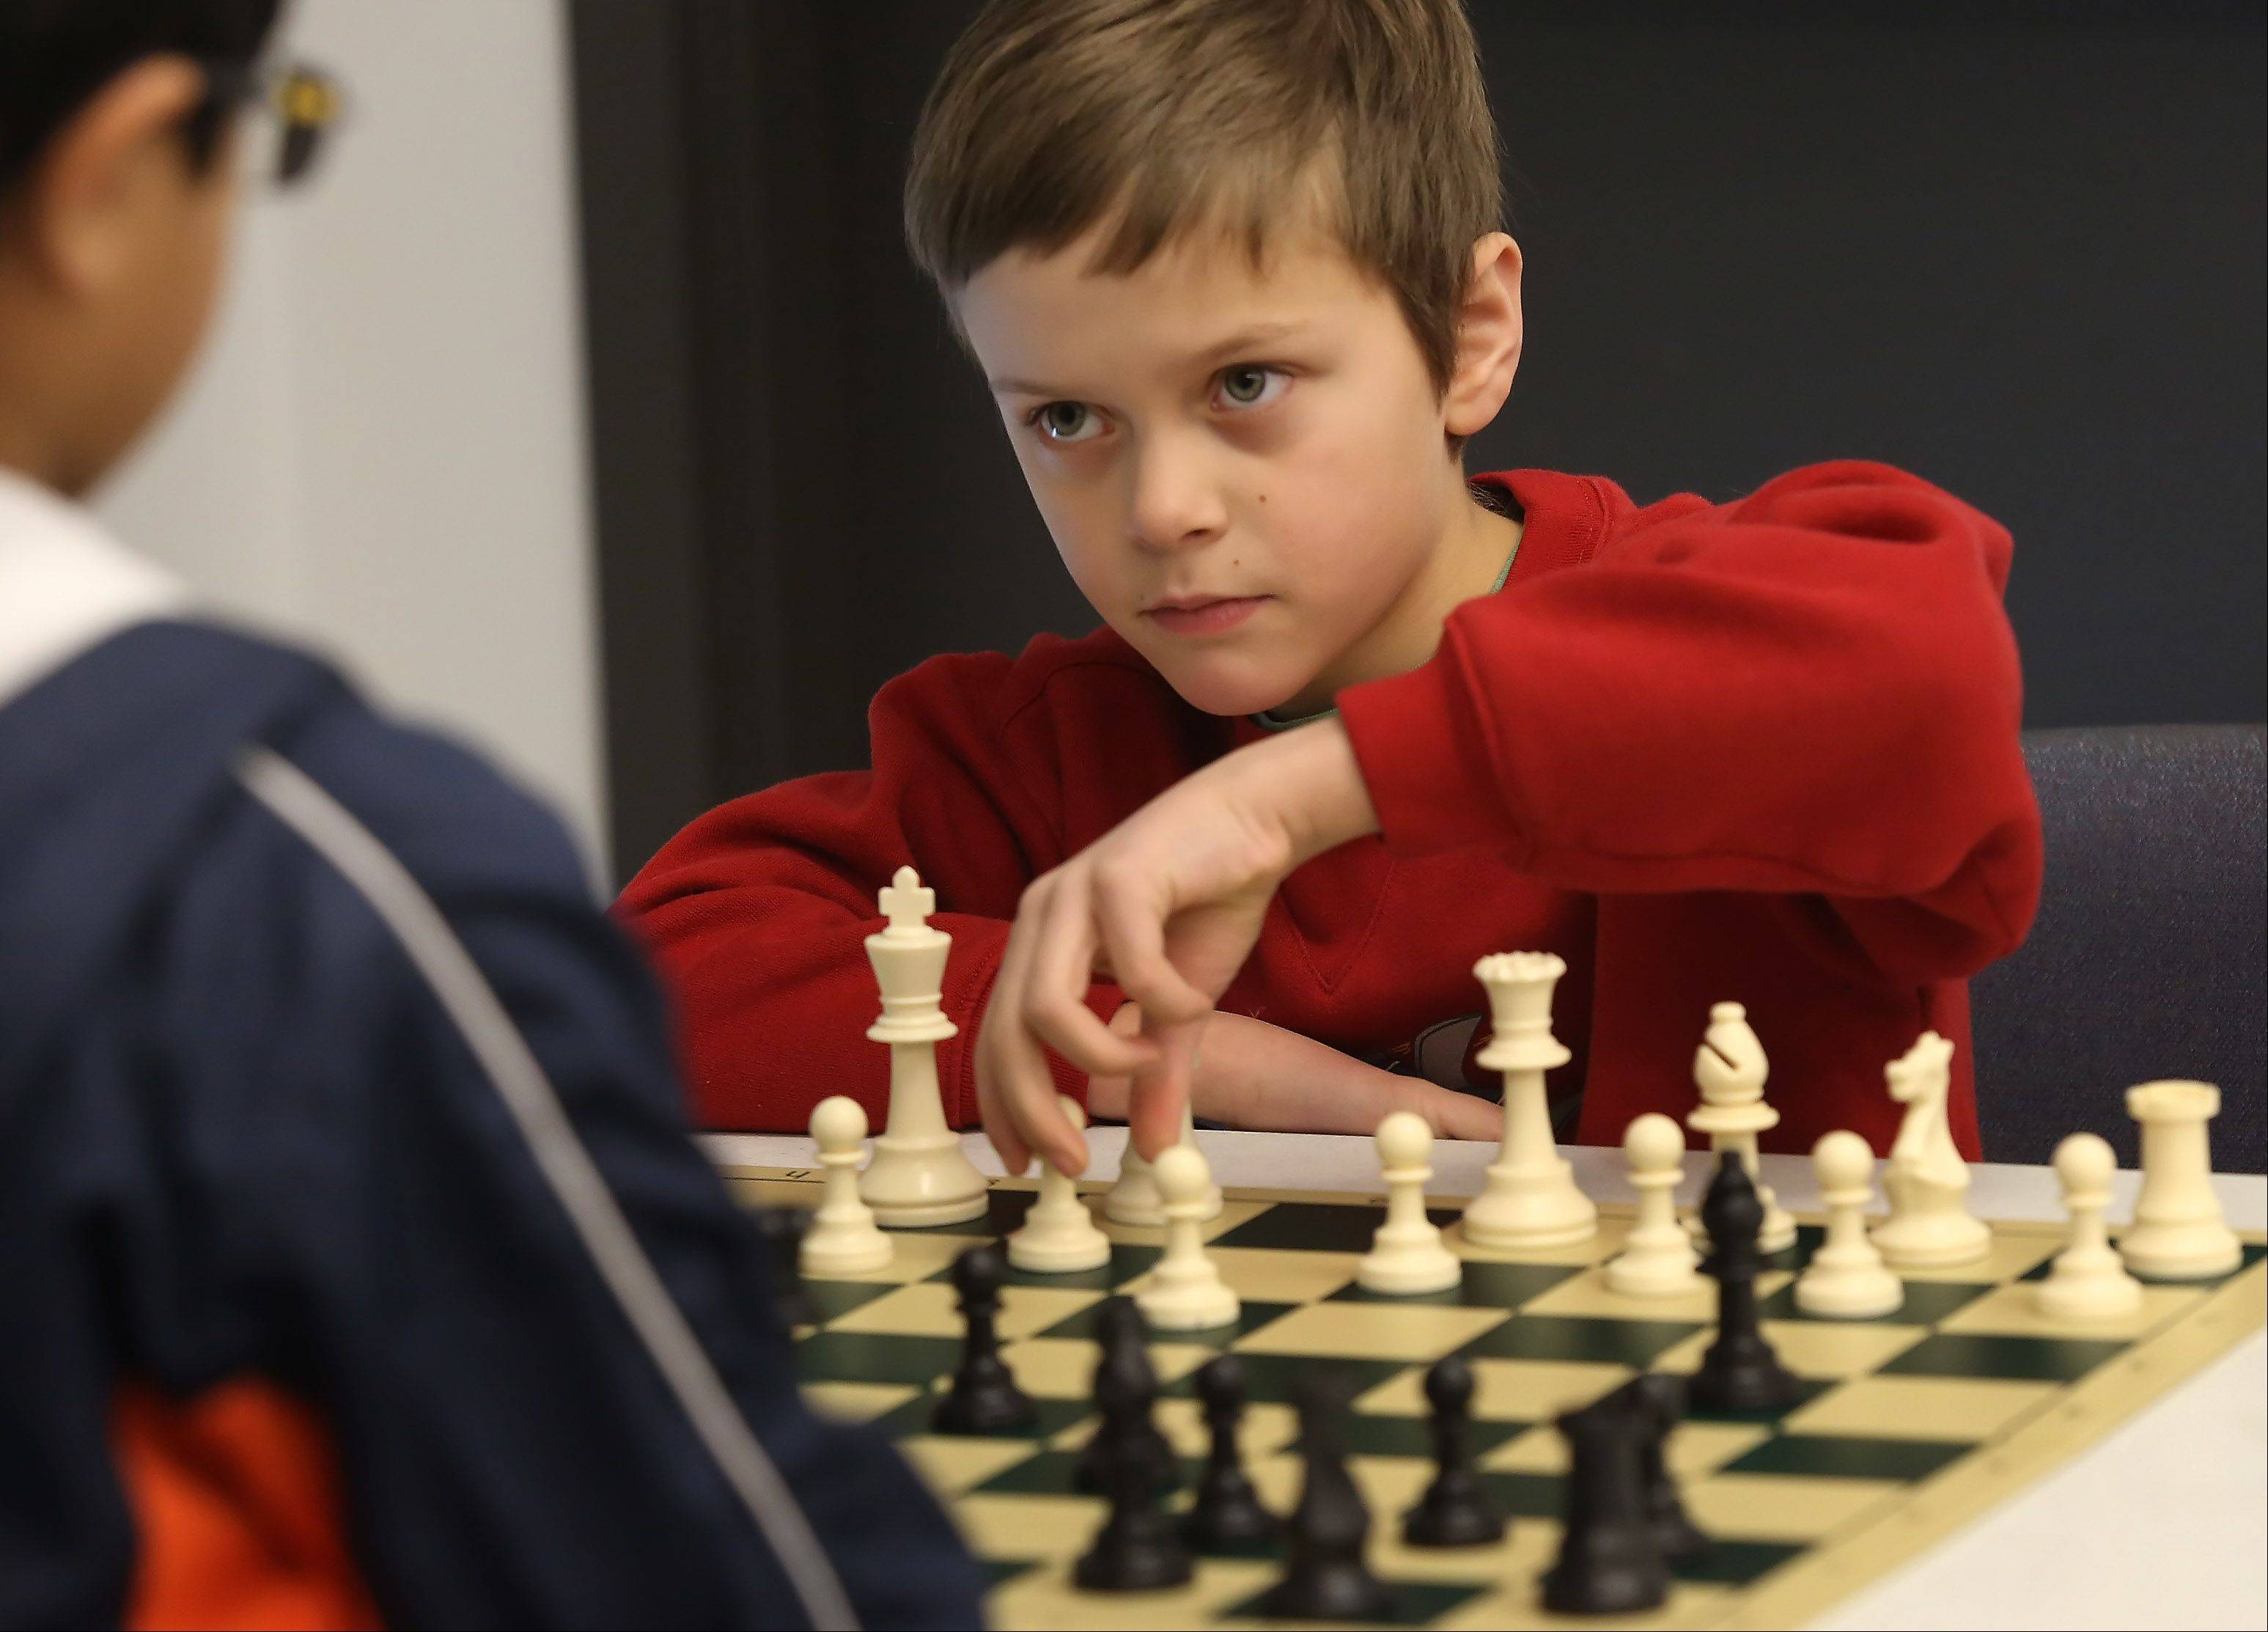 Eight-year-old Jacob Moodhe, of Buffalo Grove, makes his move during the Sixth Annual Chess Tournament on Sunday at the Indian Trails Public Library in Wheeling. The tournament was organized by the Renaissance Knights Chess Foundation for players of all ages and skill levels.